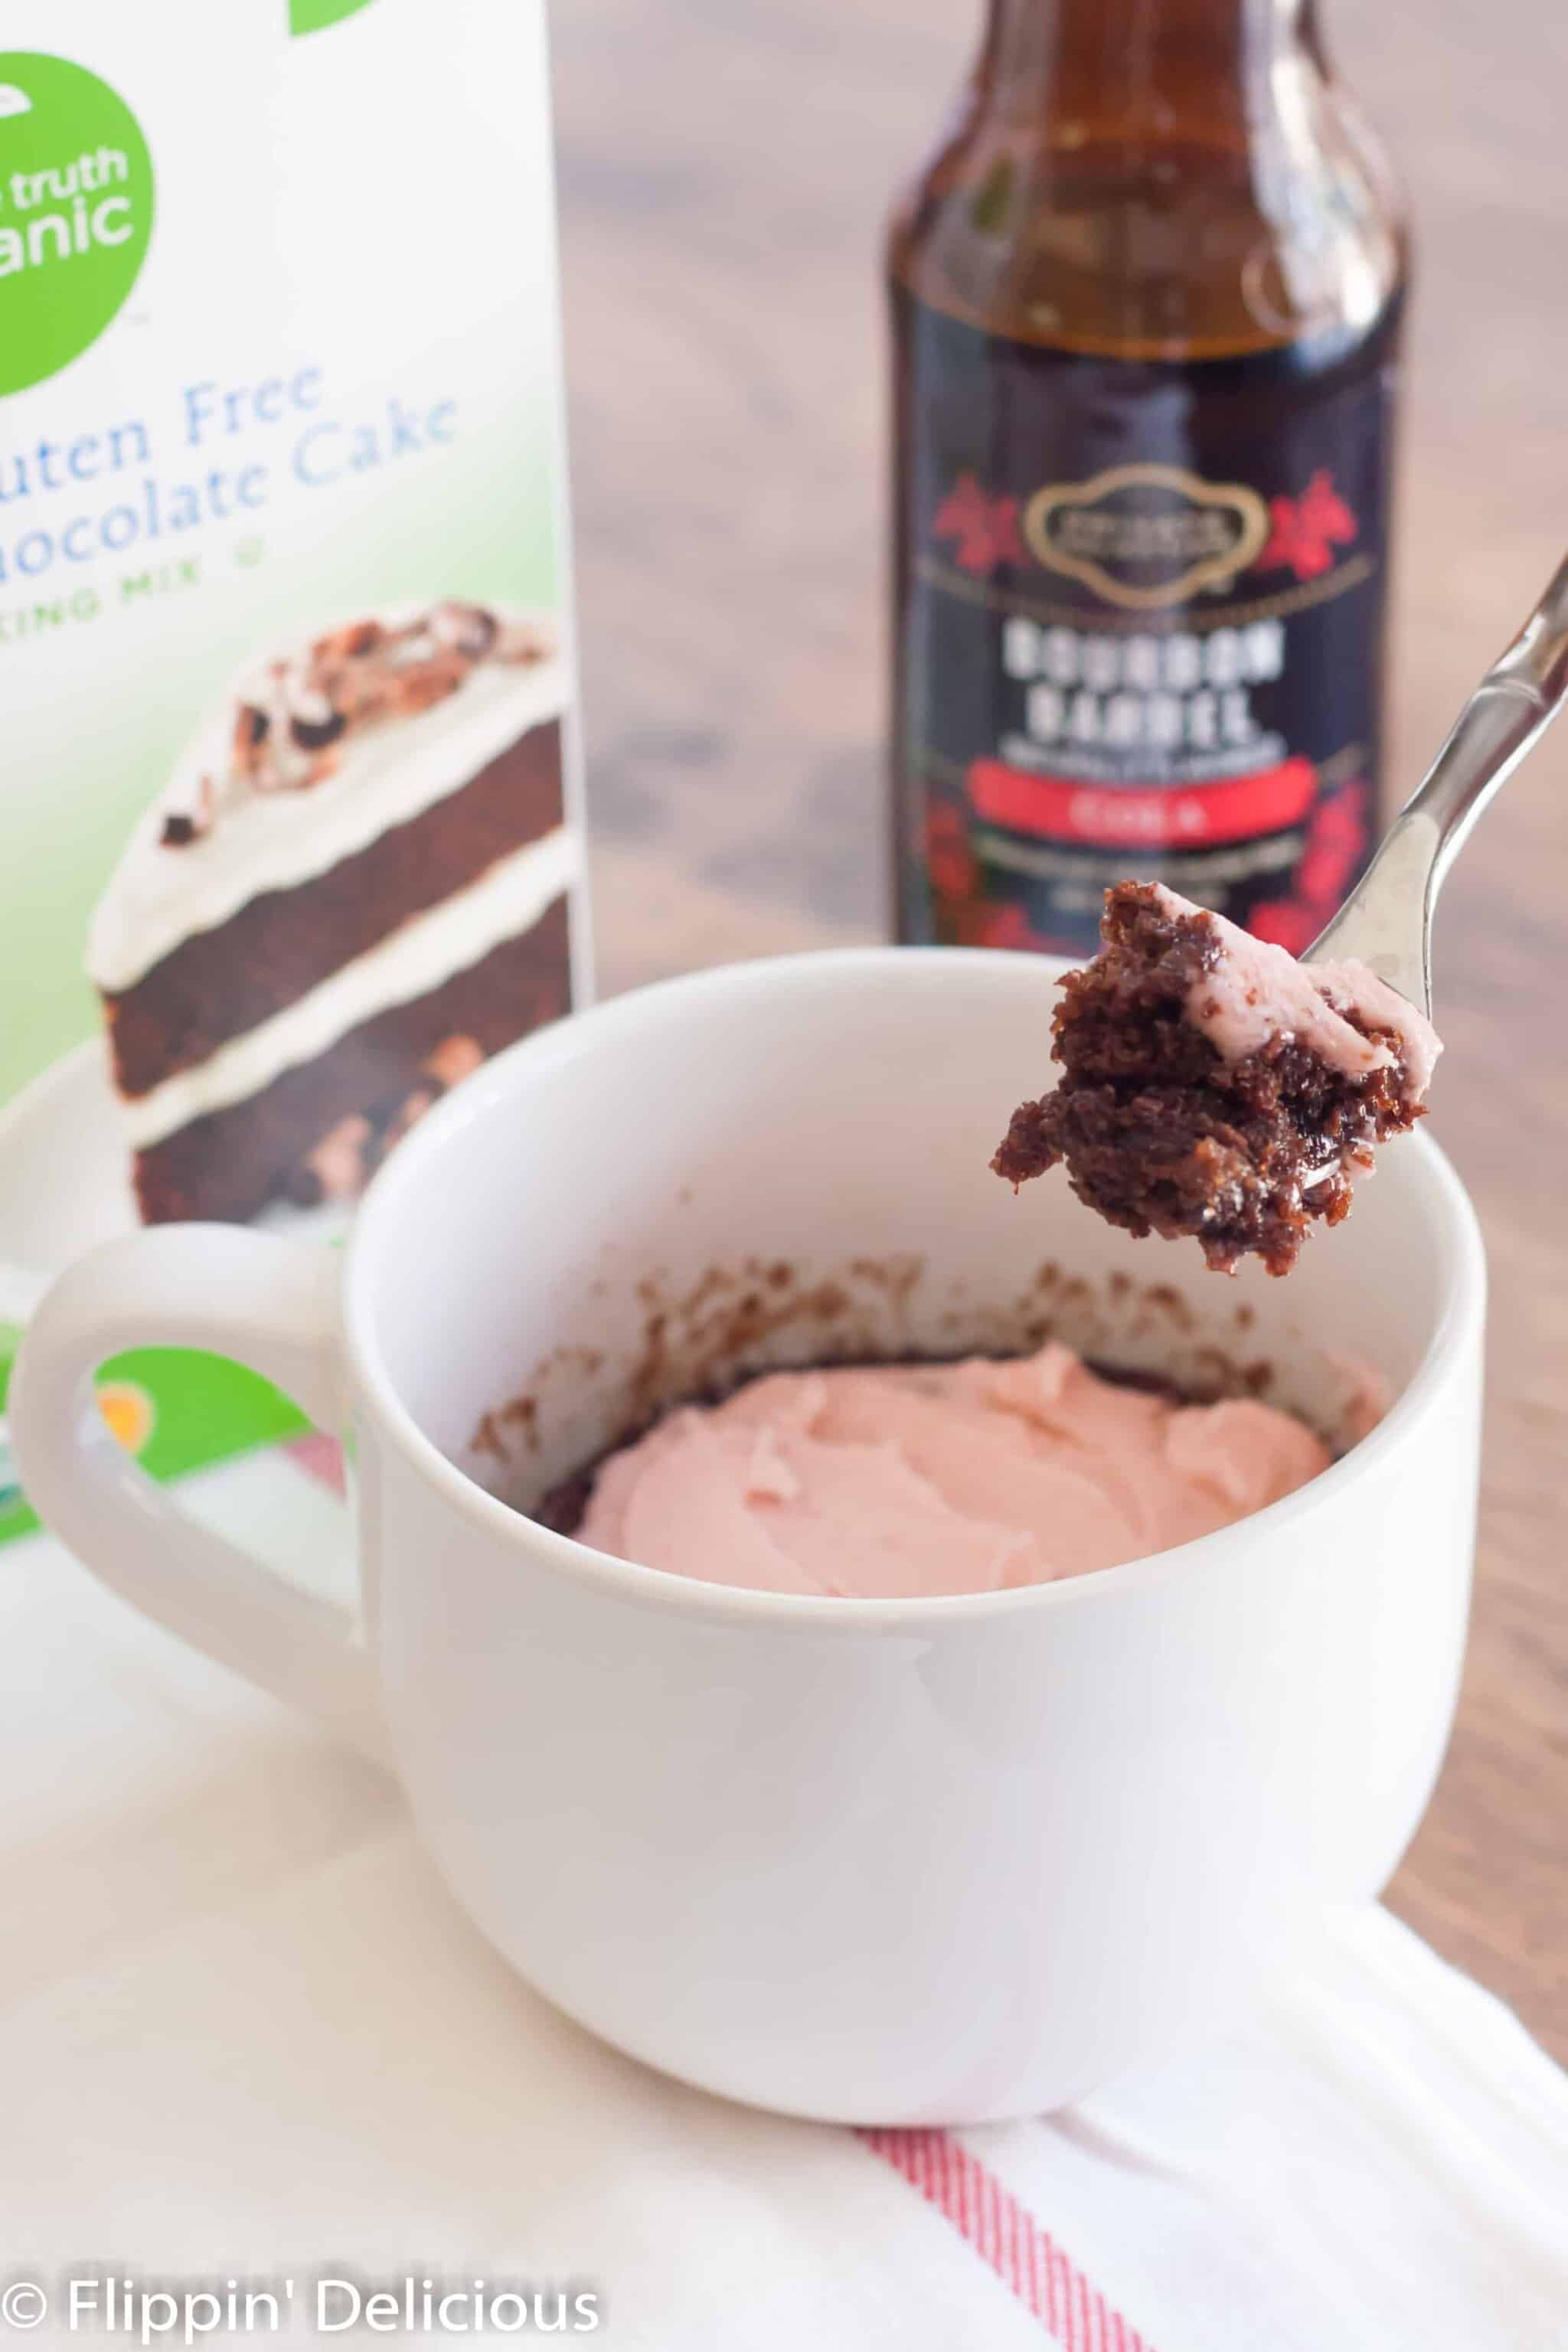 Making a gluten free chocolate mug cake has never been easier! Just 2 ingredients and less than 5 minutes.